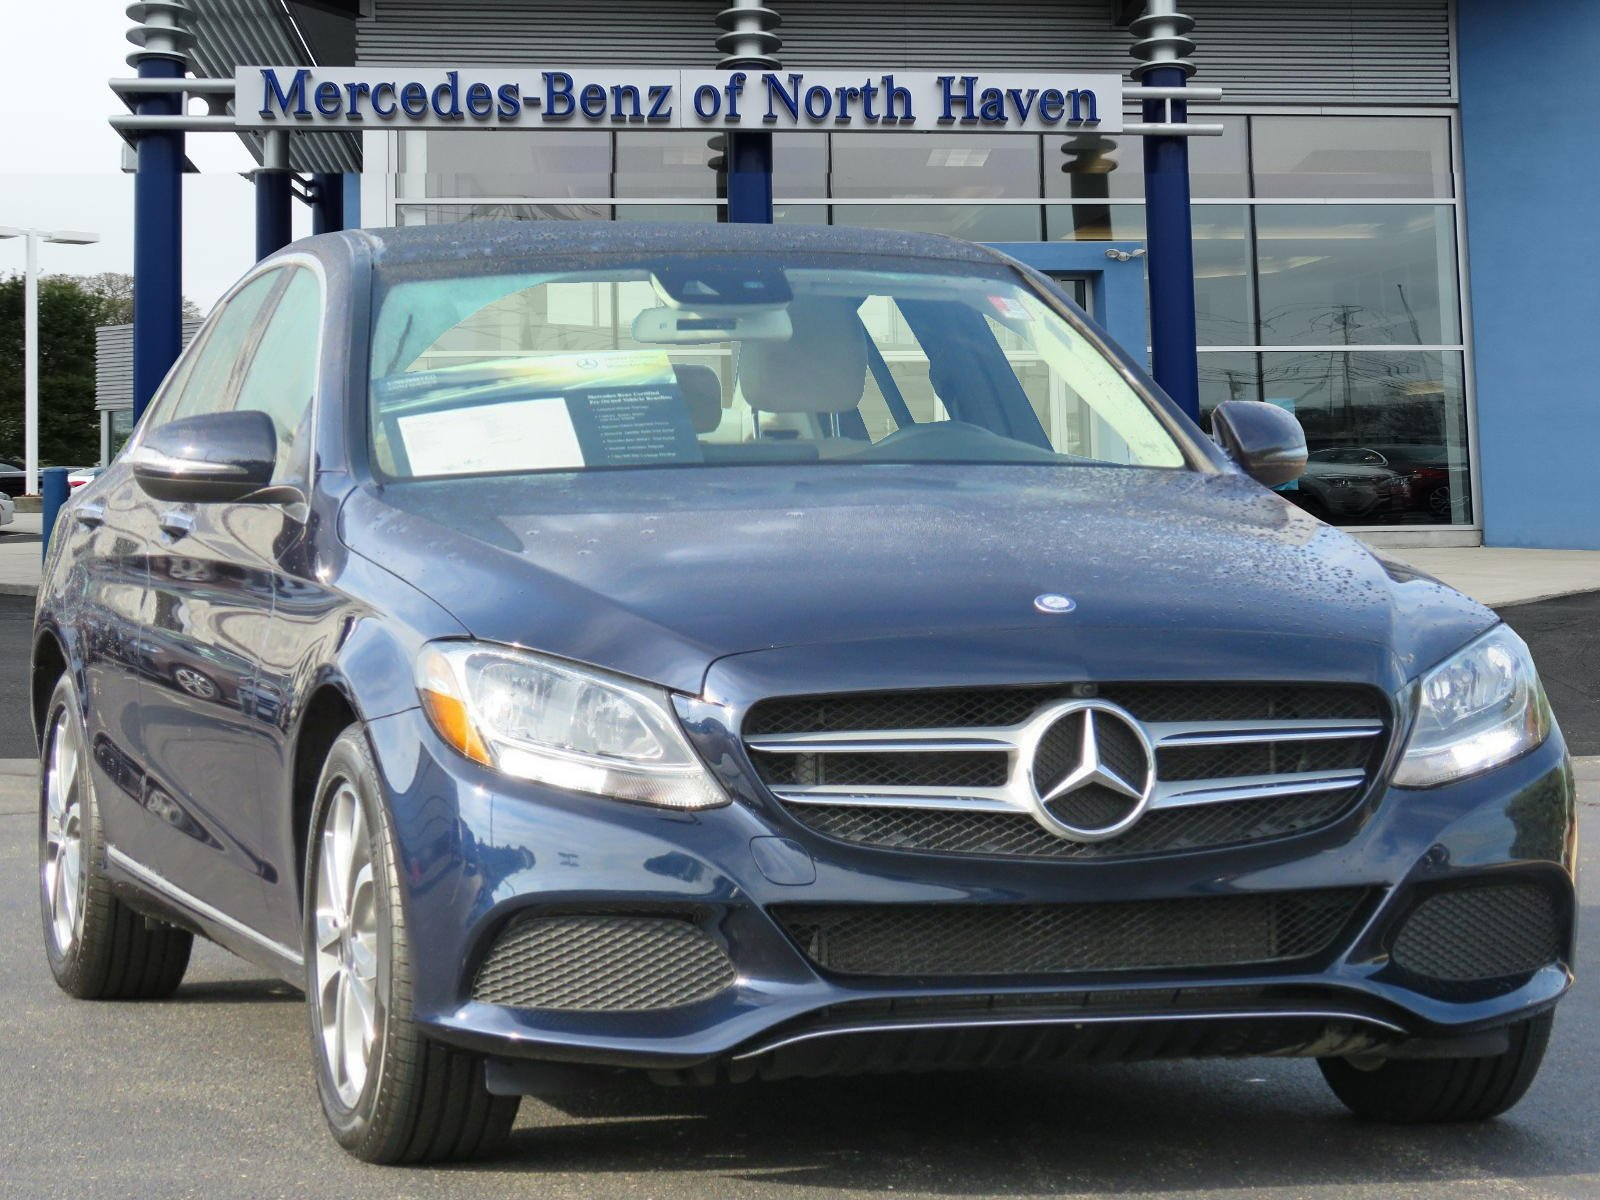 Certified Pre Owned 2016 Mercedes Benz C Class C 300 SEDAN in North